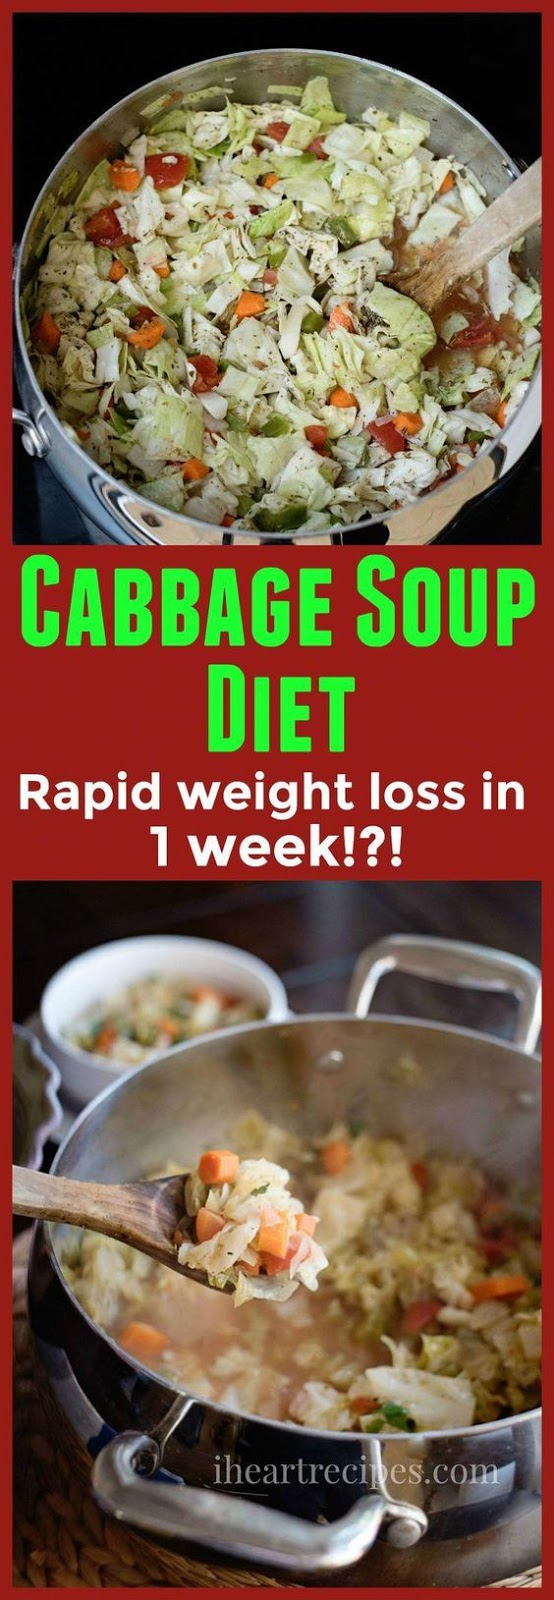 Cabbage Soup Diet Recipe For Weight Loss & Detox